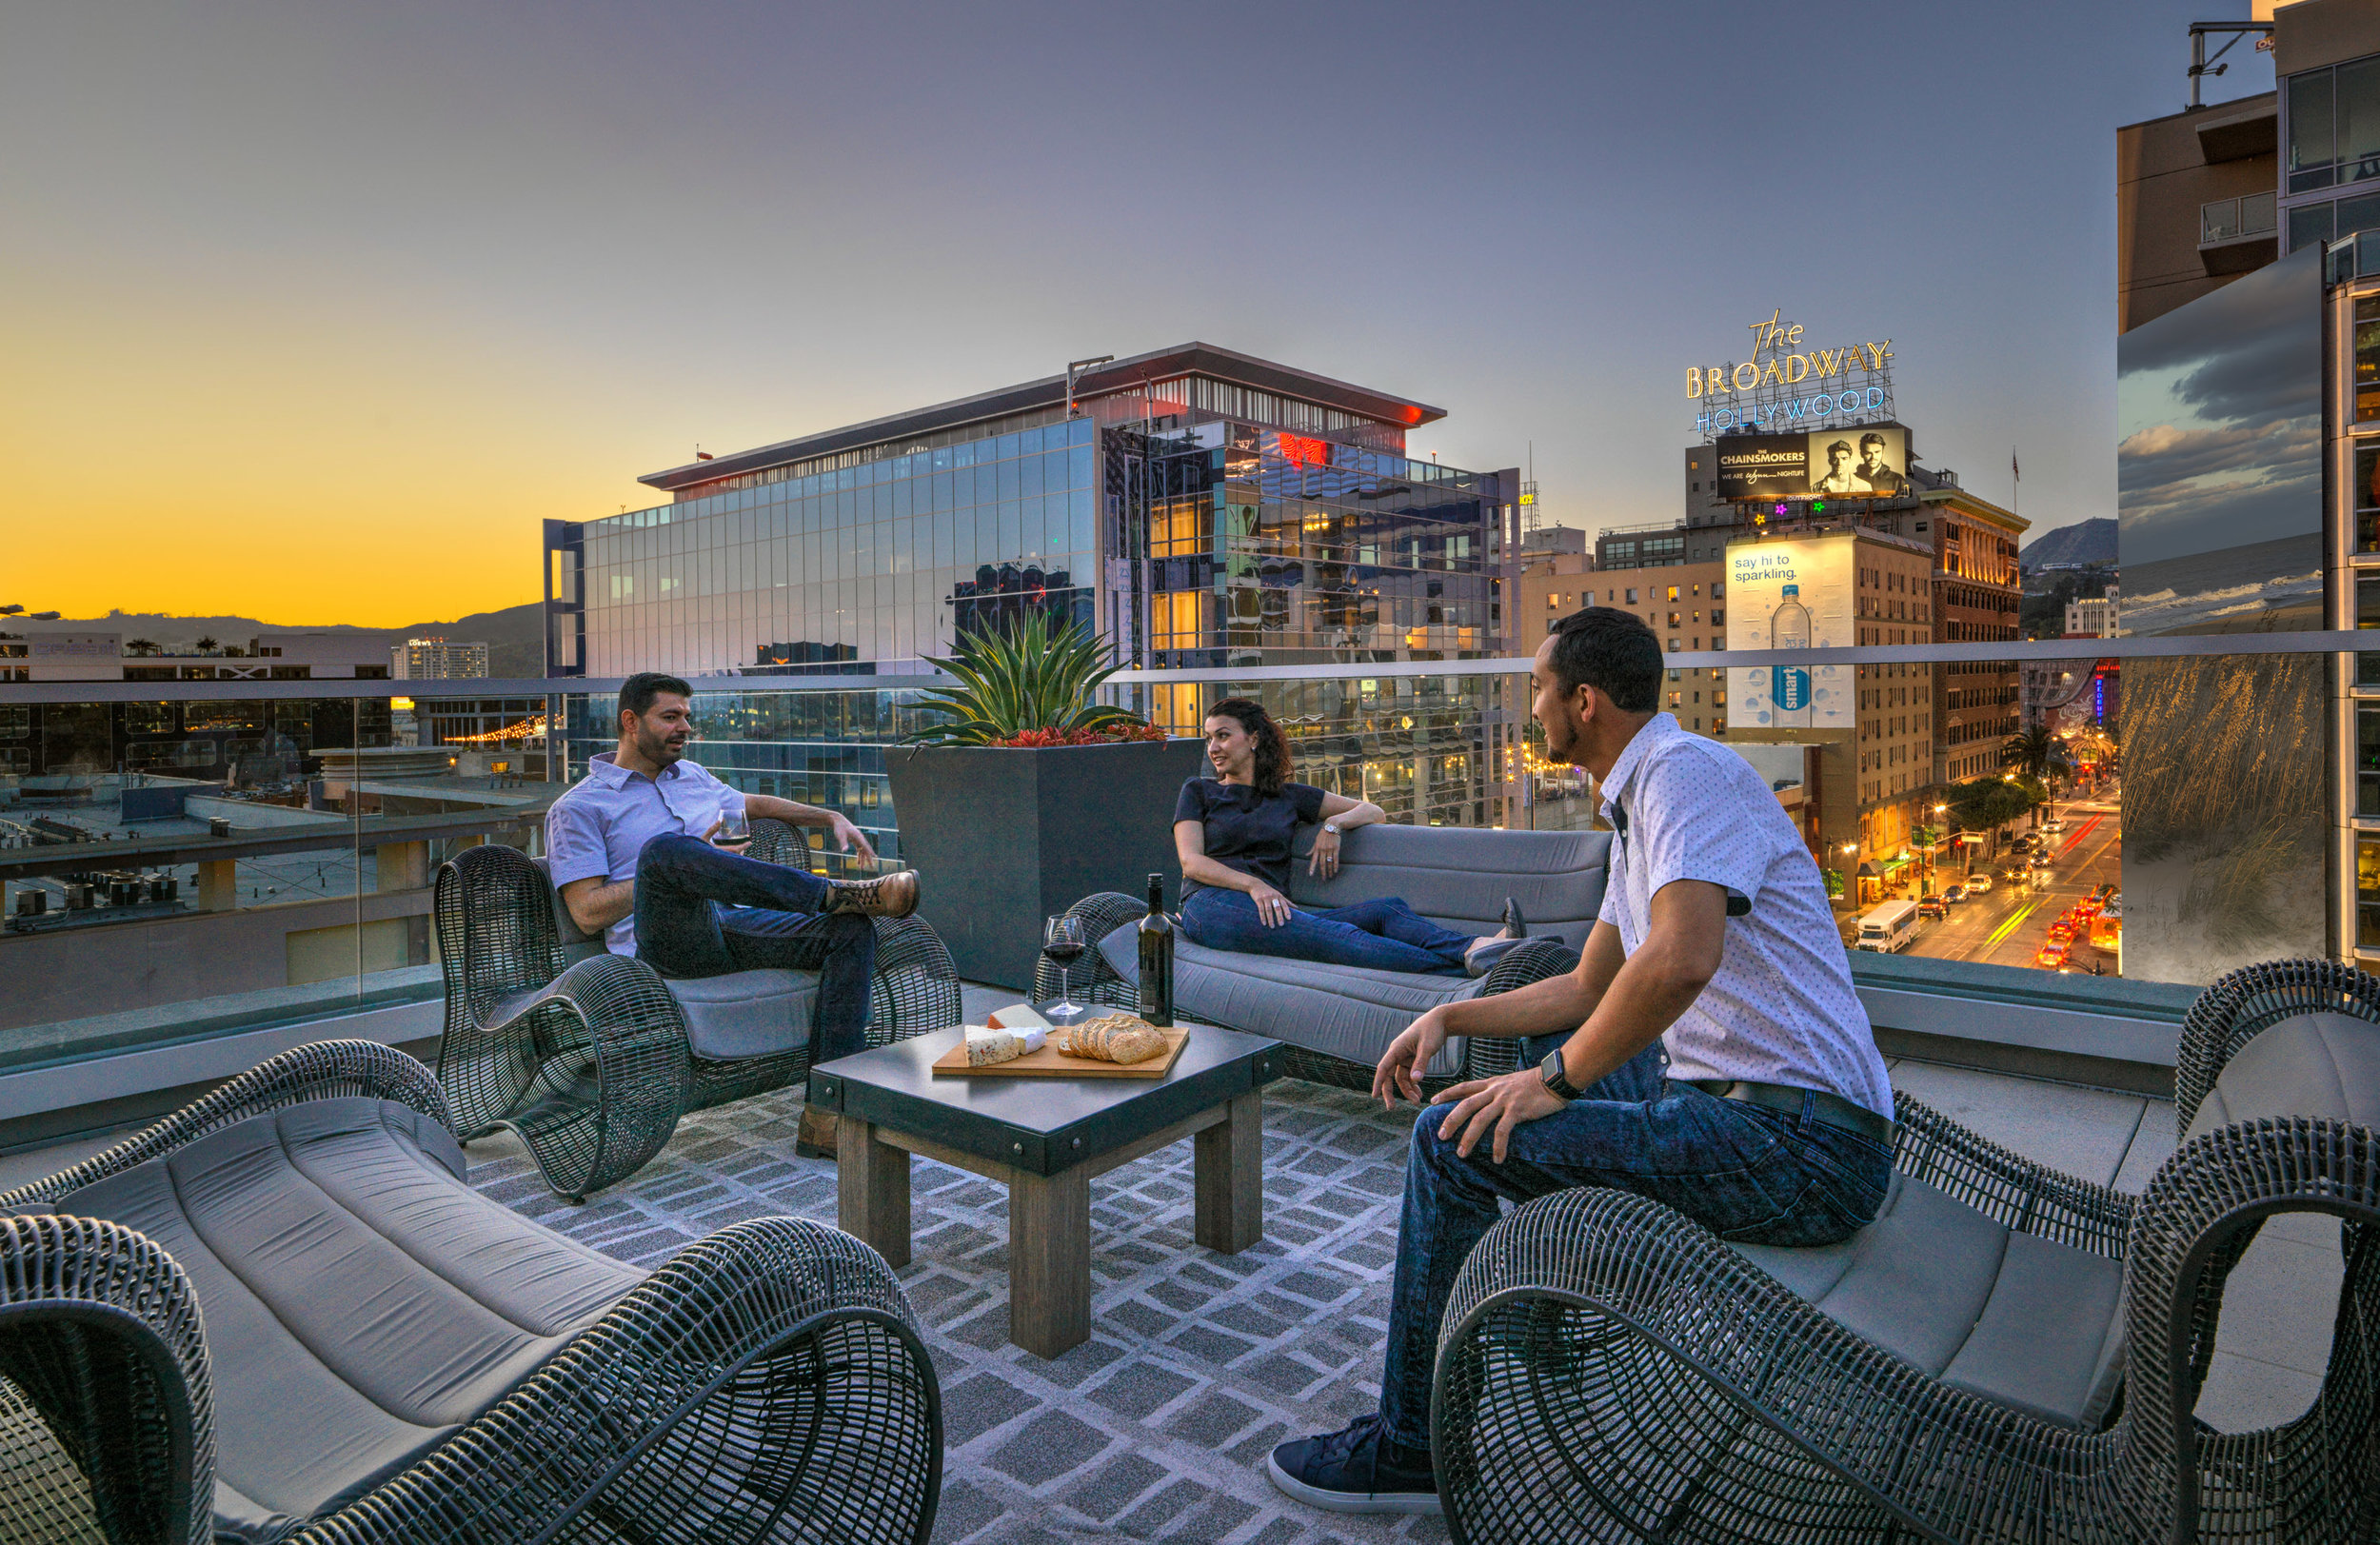 The-Camden-Apartments-Hollywood-California-Roof-Deck-Lounge-Night-Lifestyle.jpg